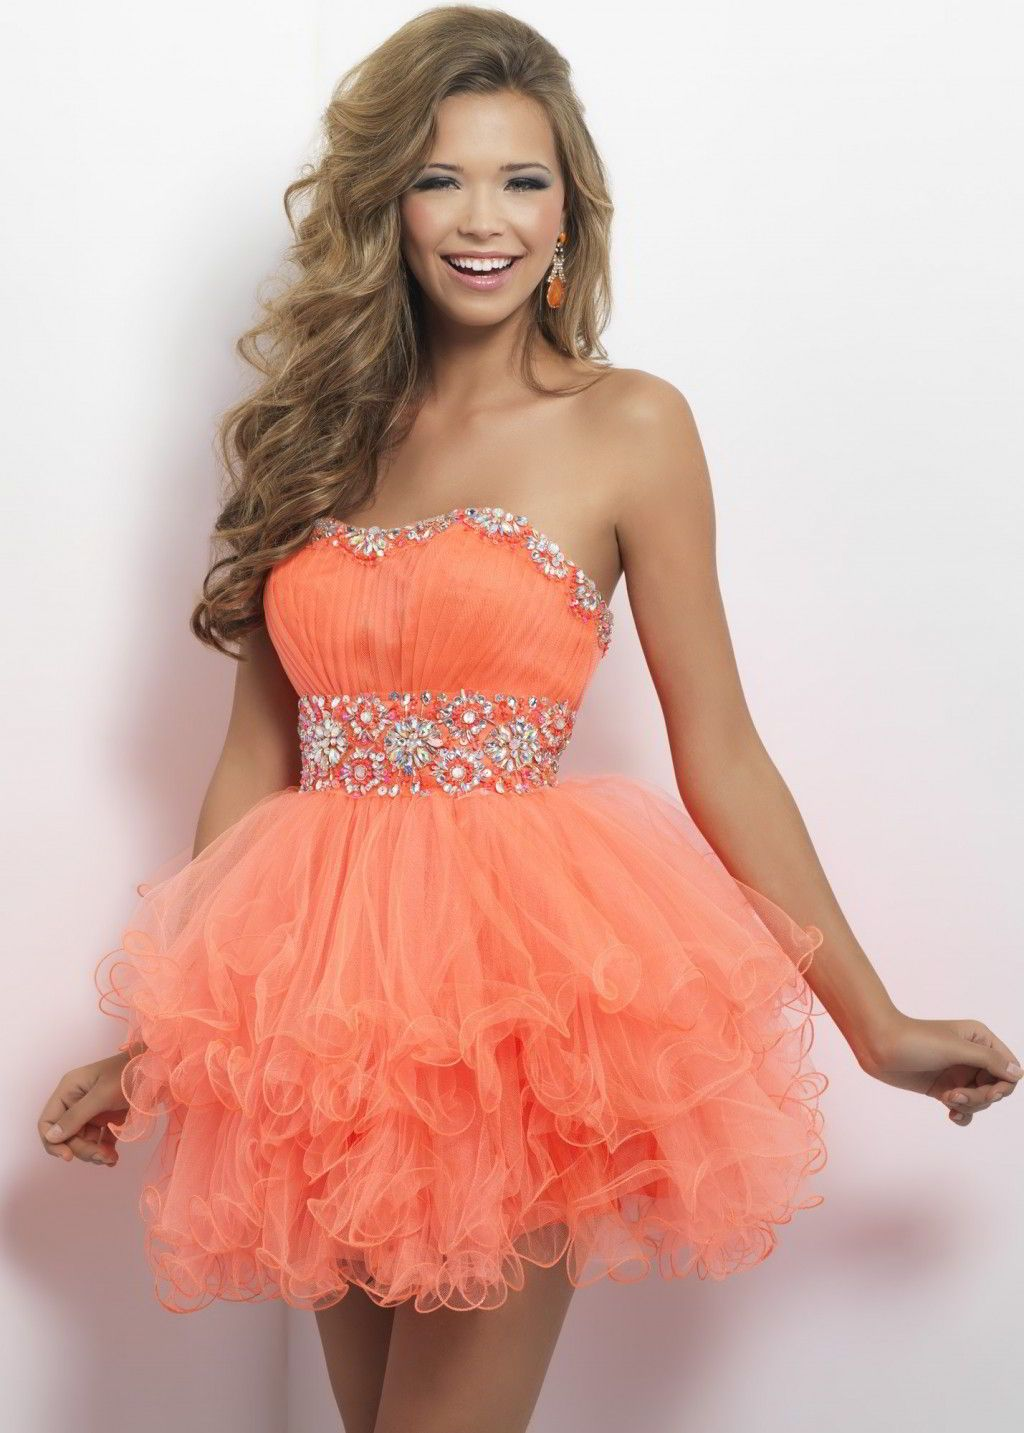 Cute-Party-Dresses-for-Tweens-Ideas | Cute Party Dresses To Make ...